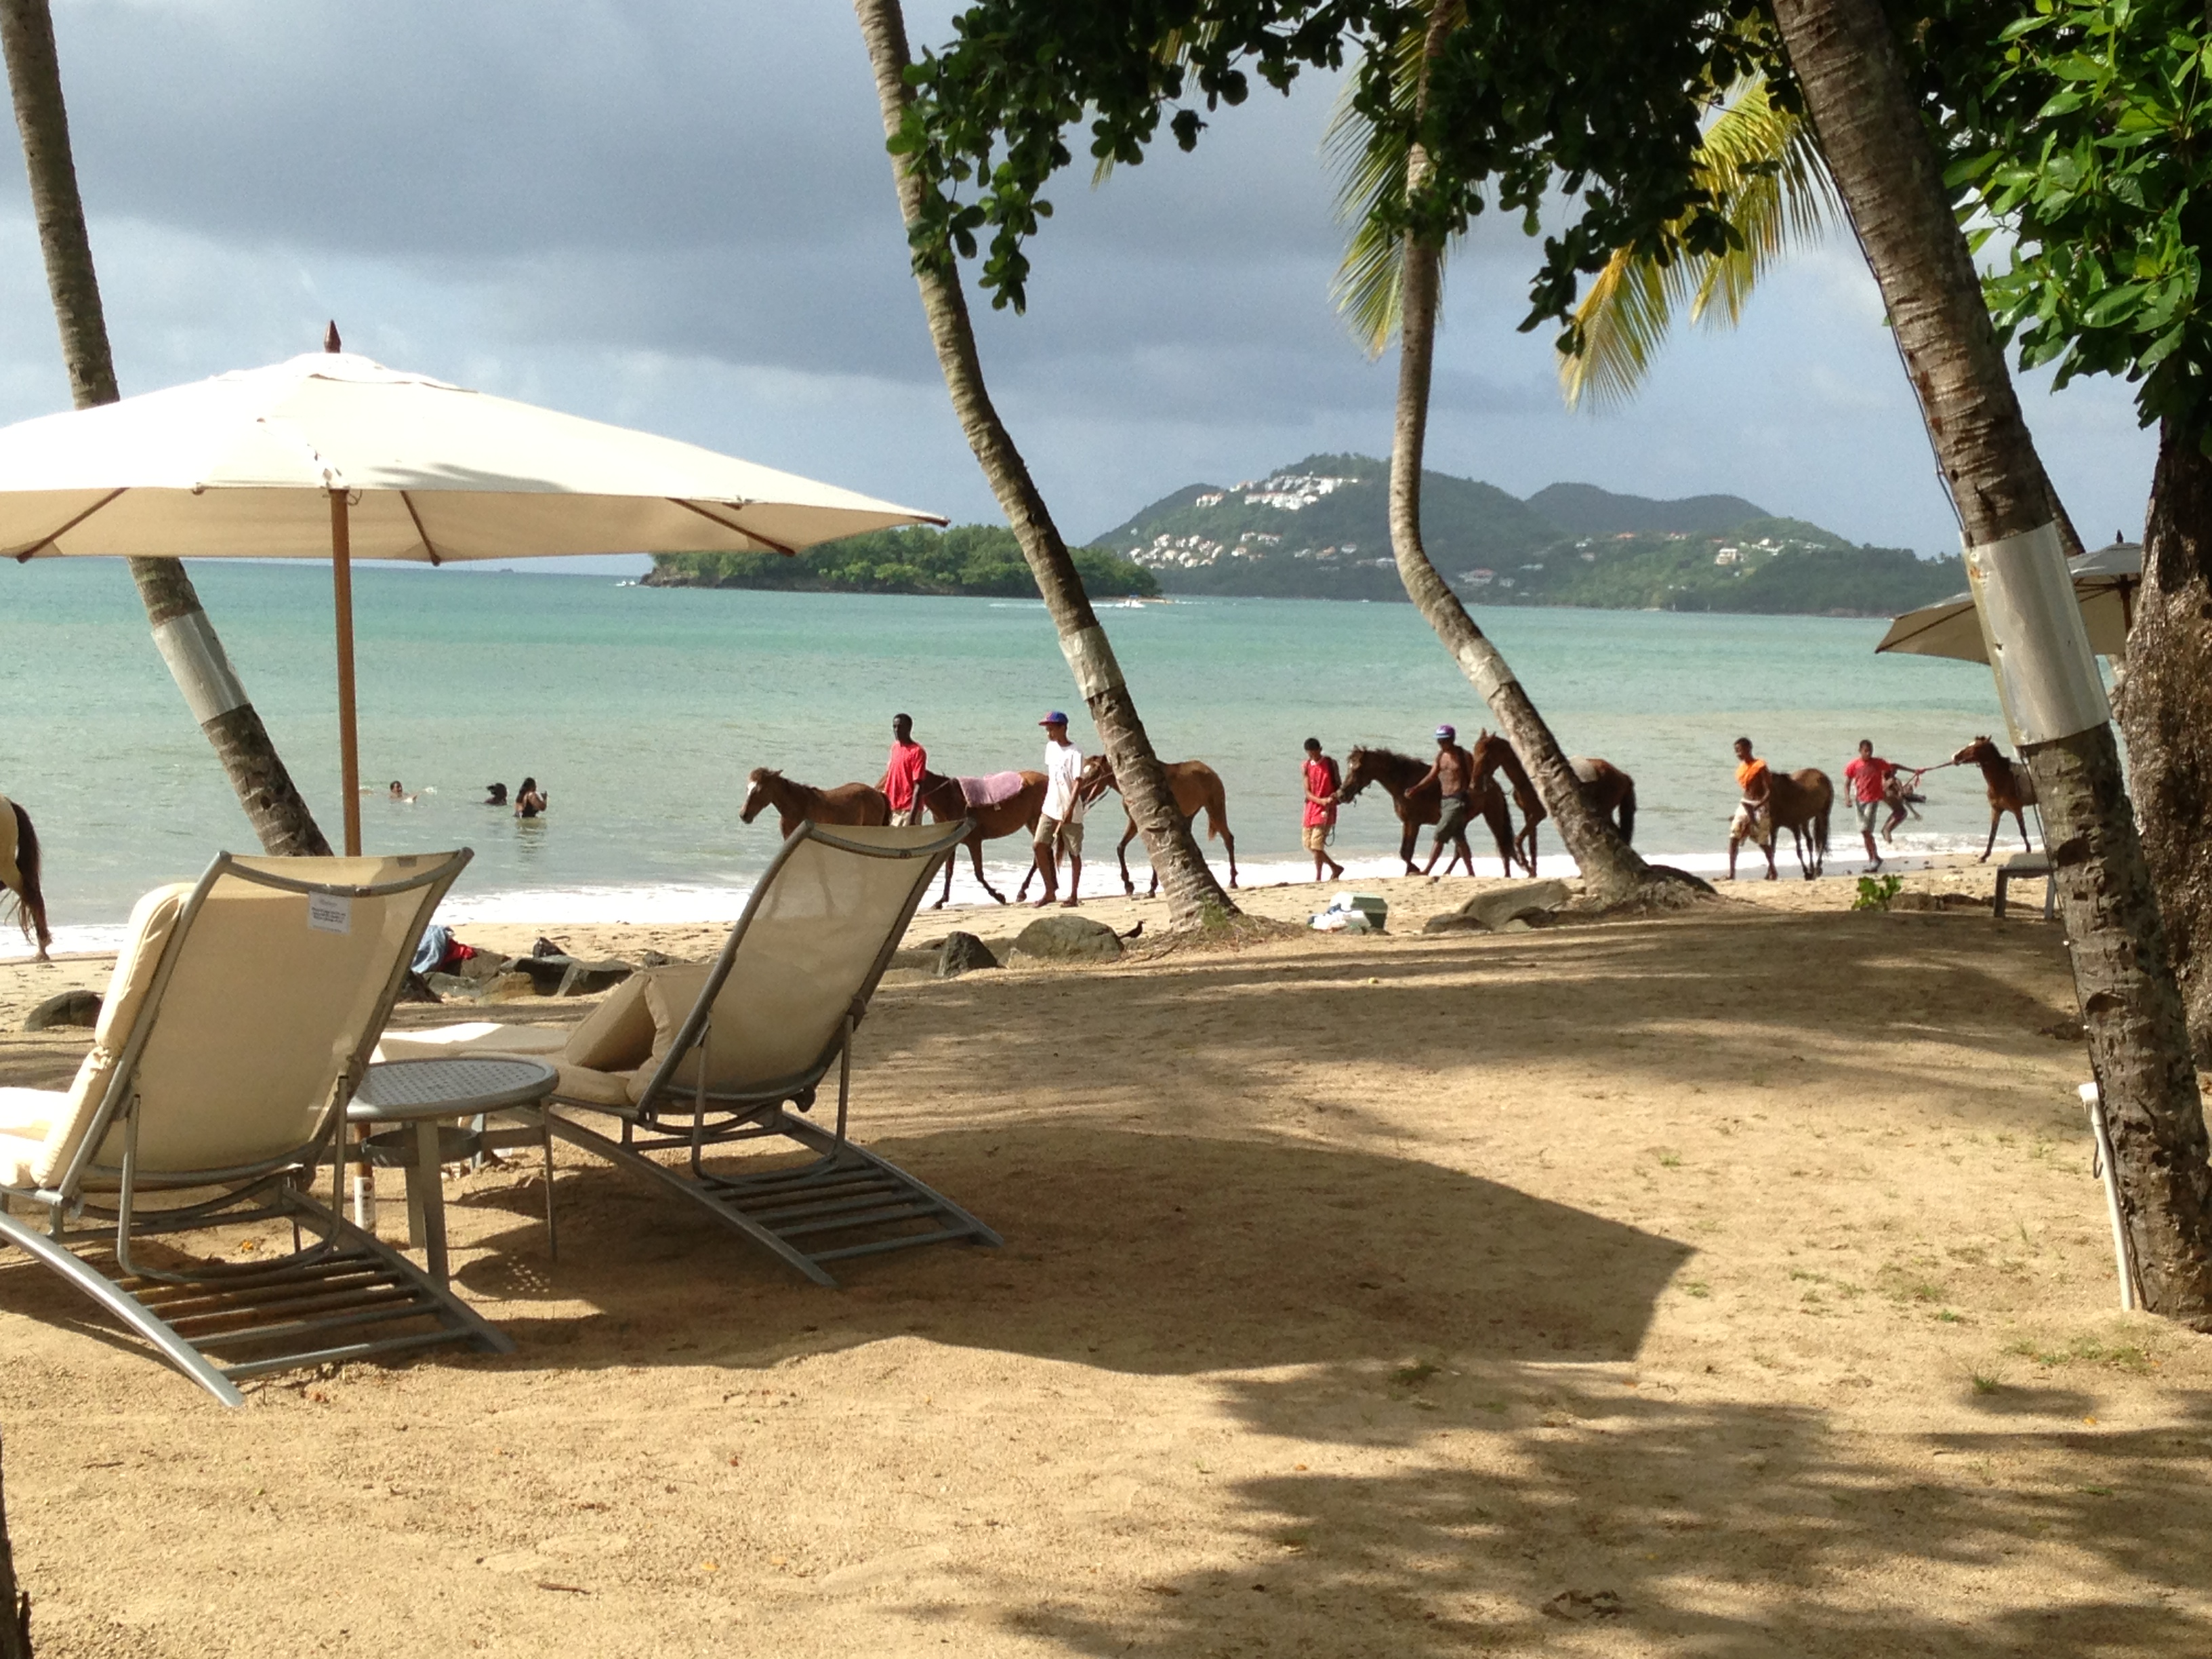 Travel blog: Zoe is Made to Feel at Home at Rendezvous, St Lucia